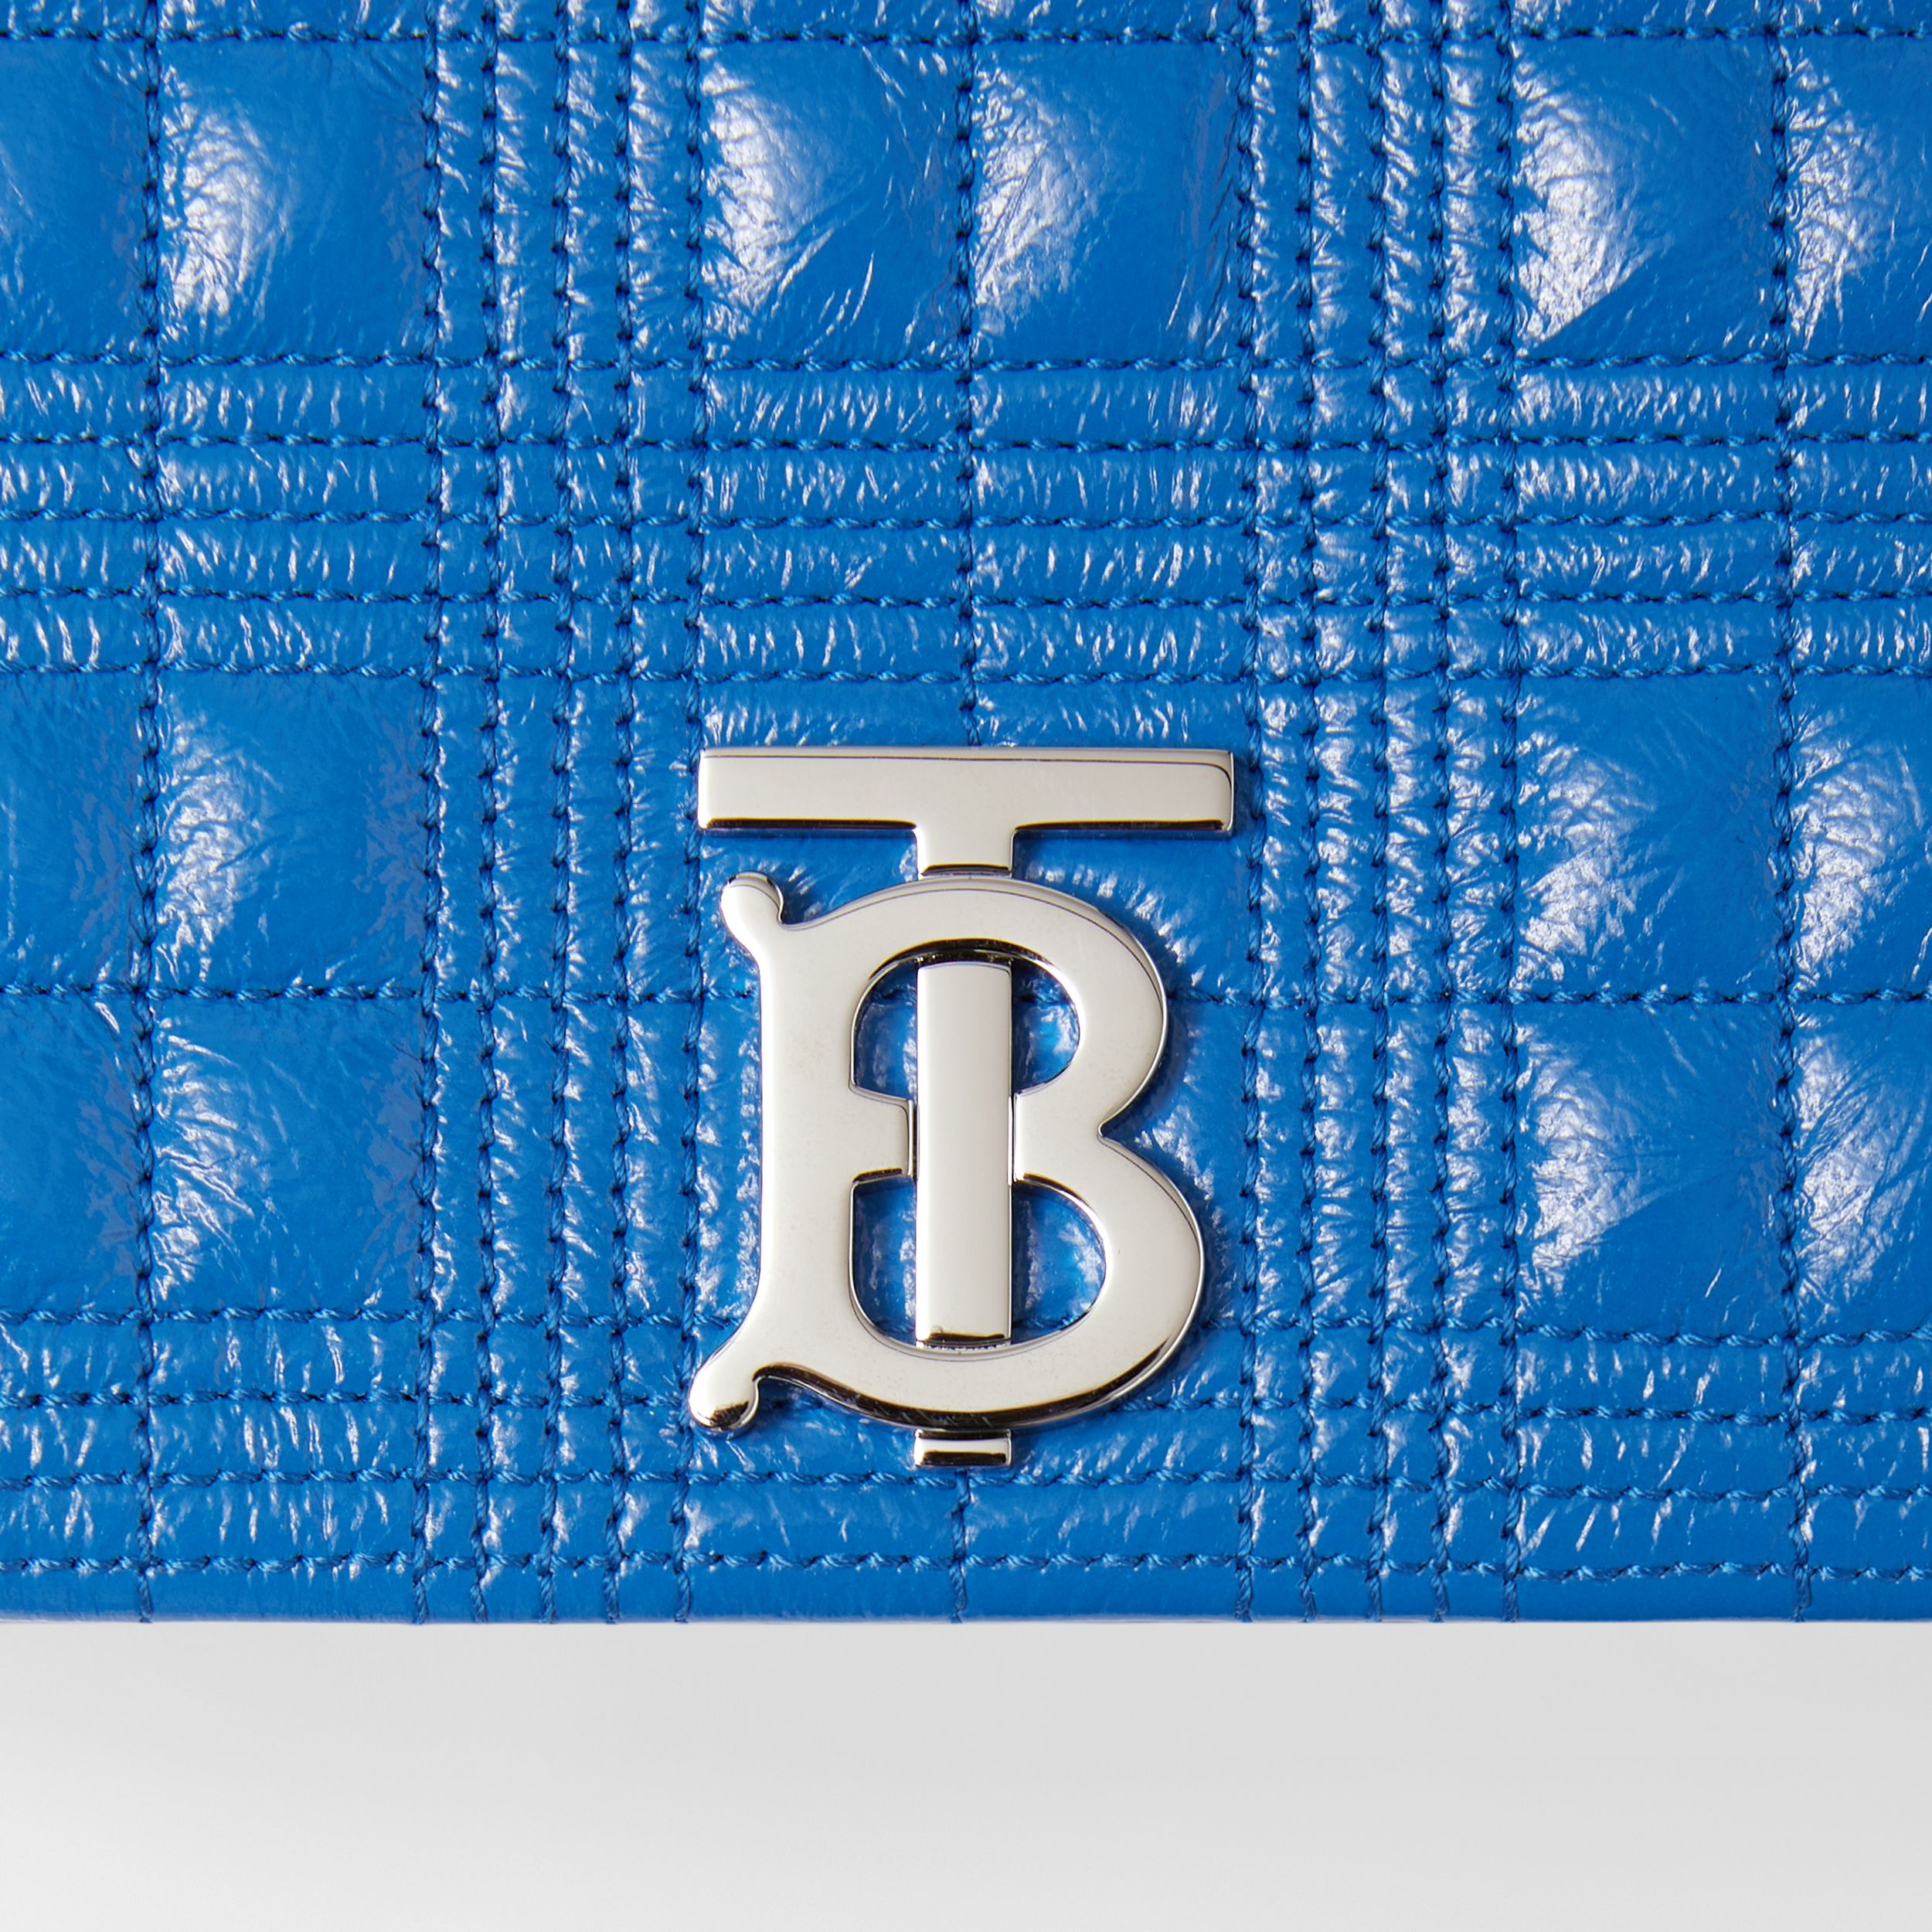 Small Quilted Lambskin Lola Bag in Warm Royal Blue - Women | Burberry United Kingdom - 2